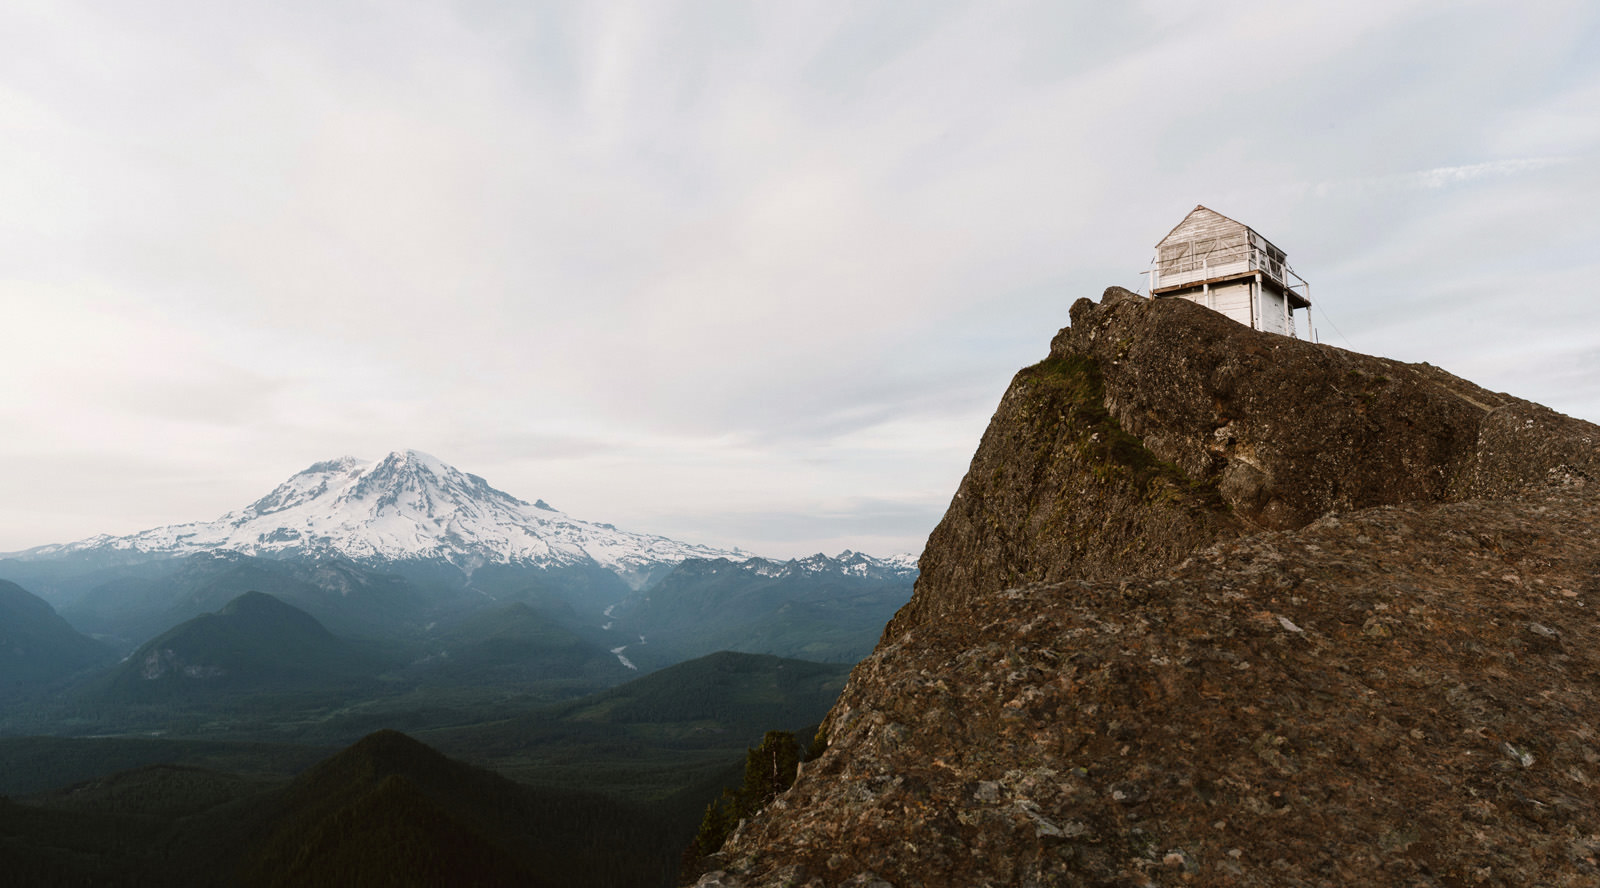 katelynnethan-blog-23 MOUNT RAINIER LOOKOUT ELOPEMENT